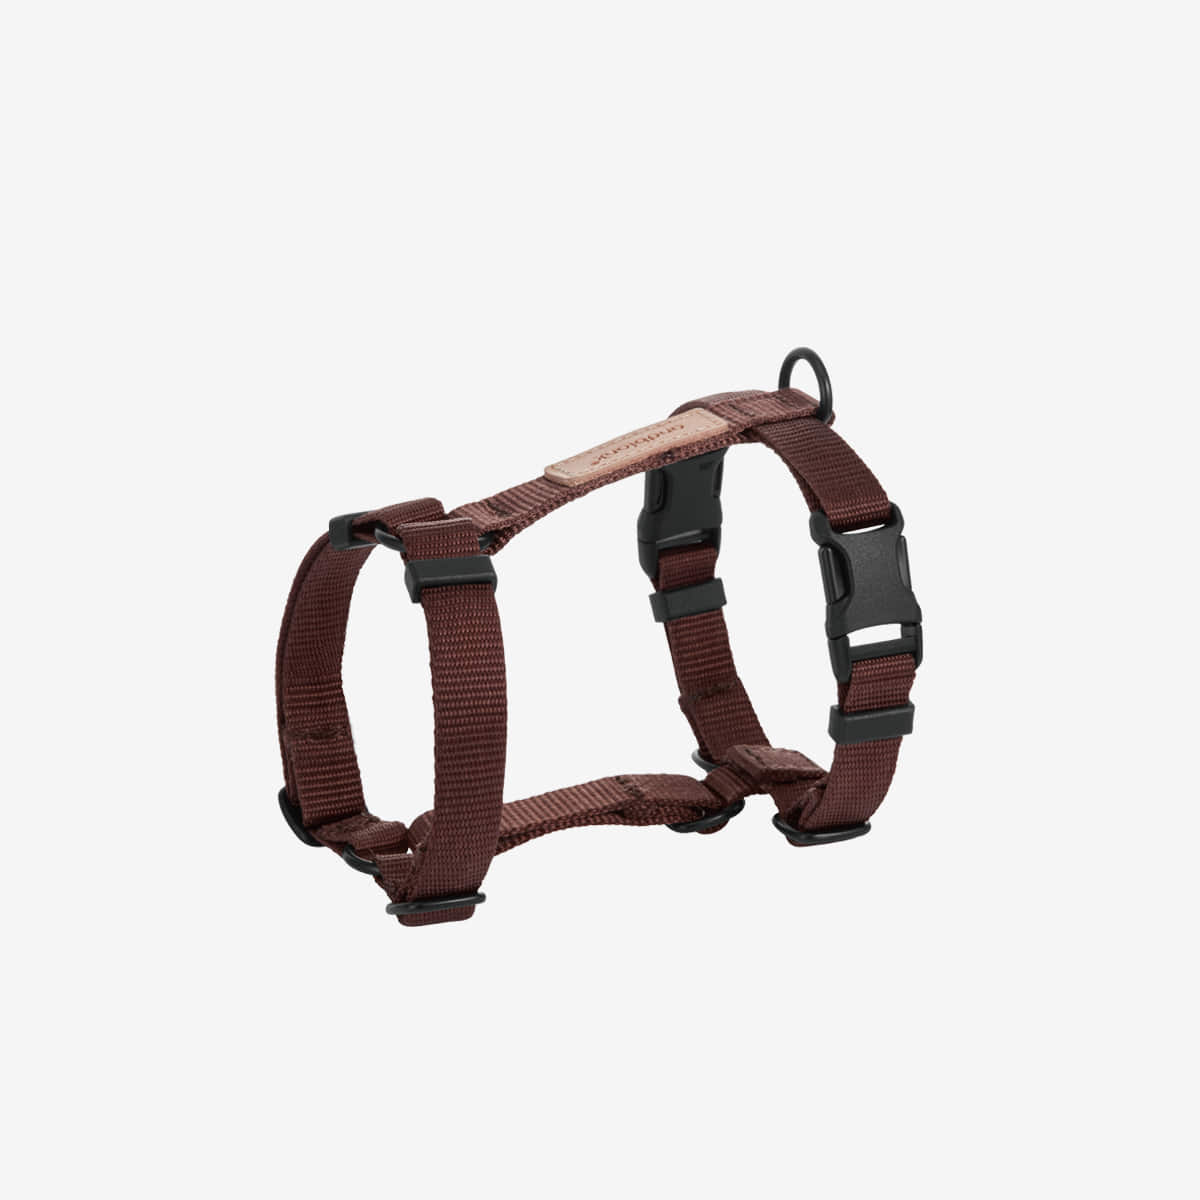 앤블랭크 harness : brown